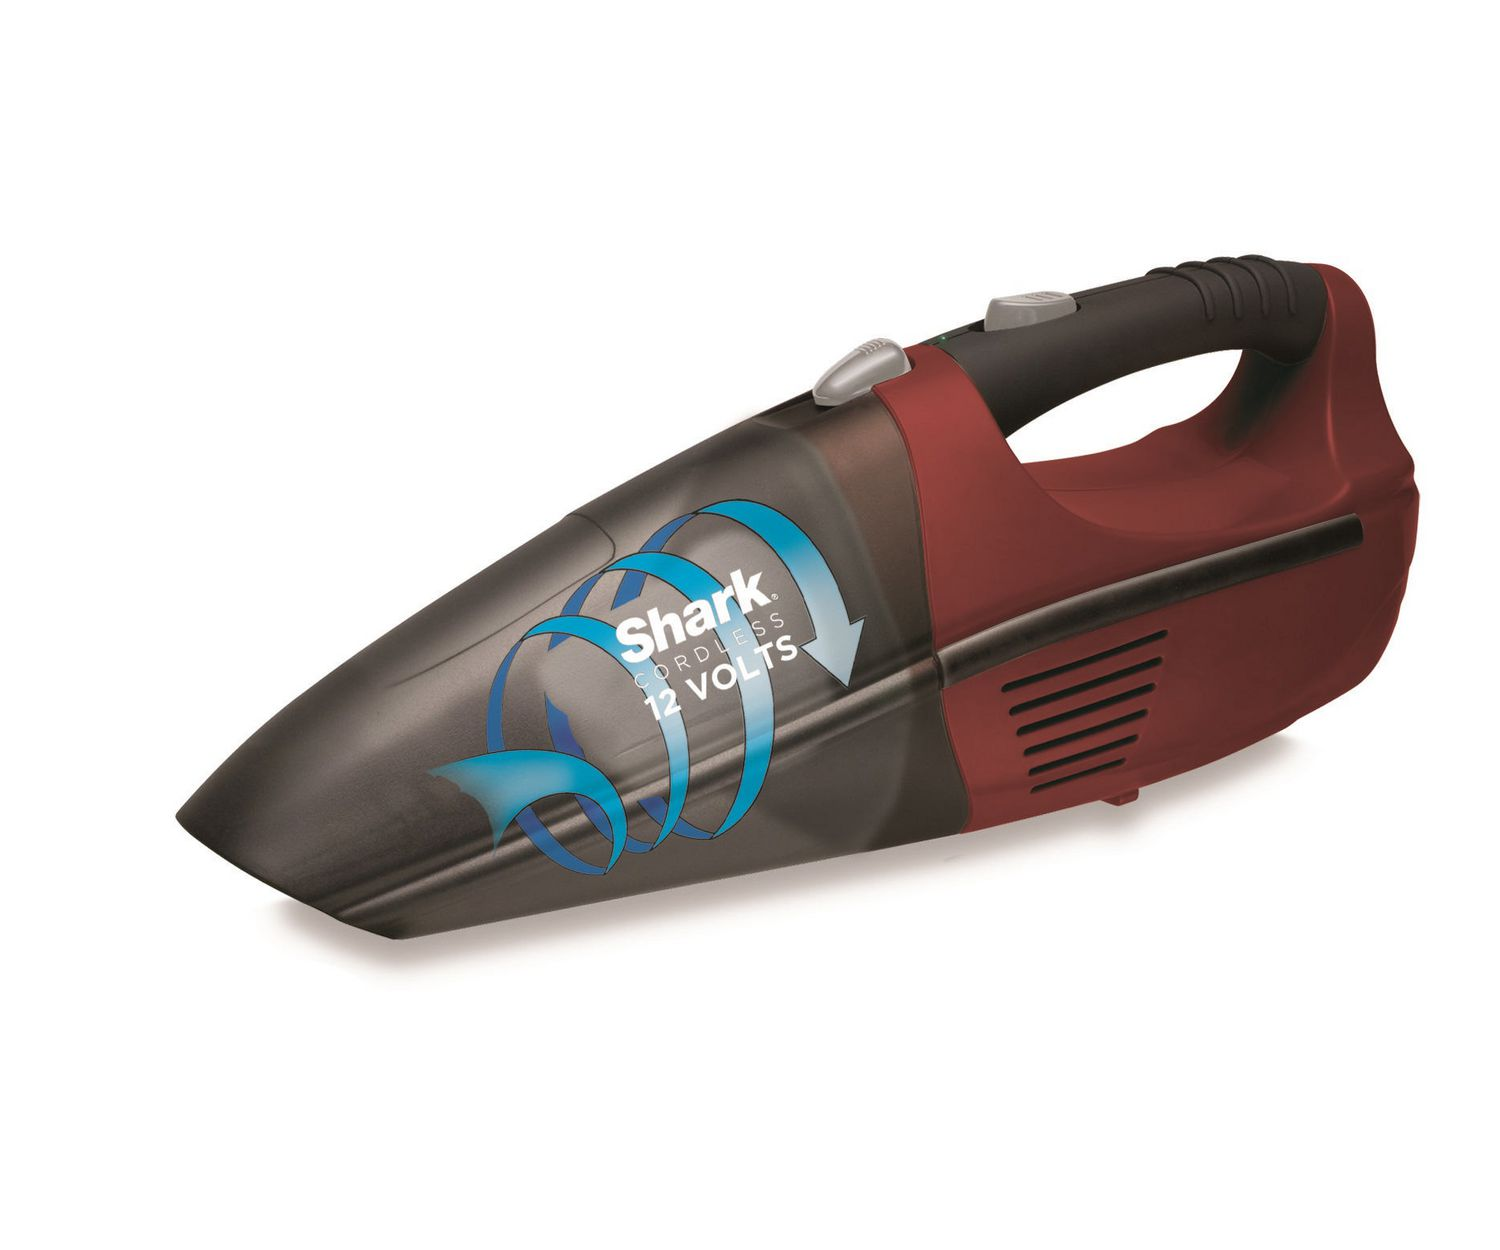 SharkR Cordless 12 Volt Hand Vacuum Cleaner